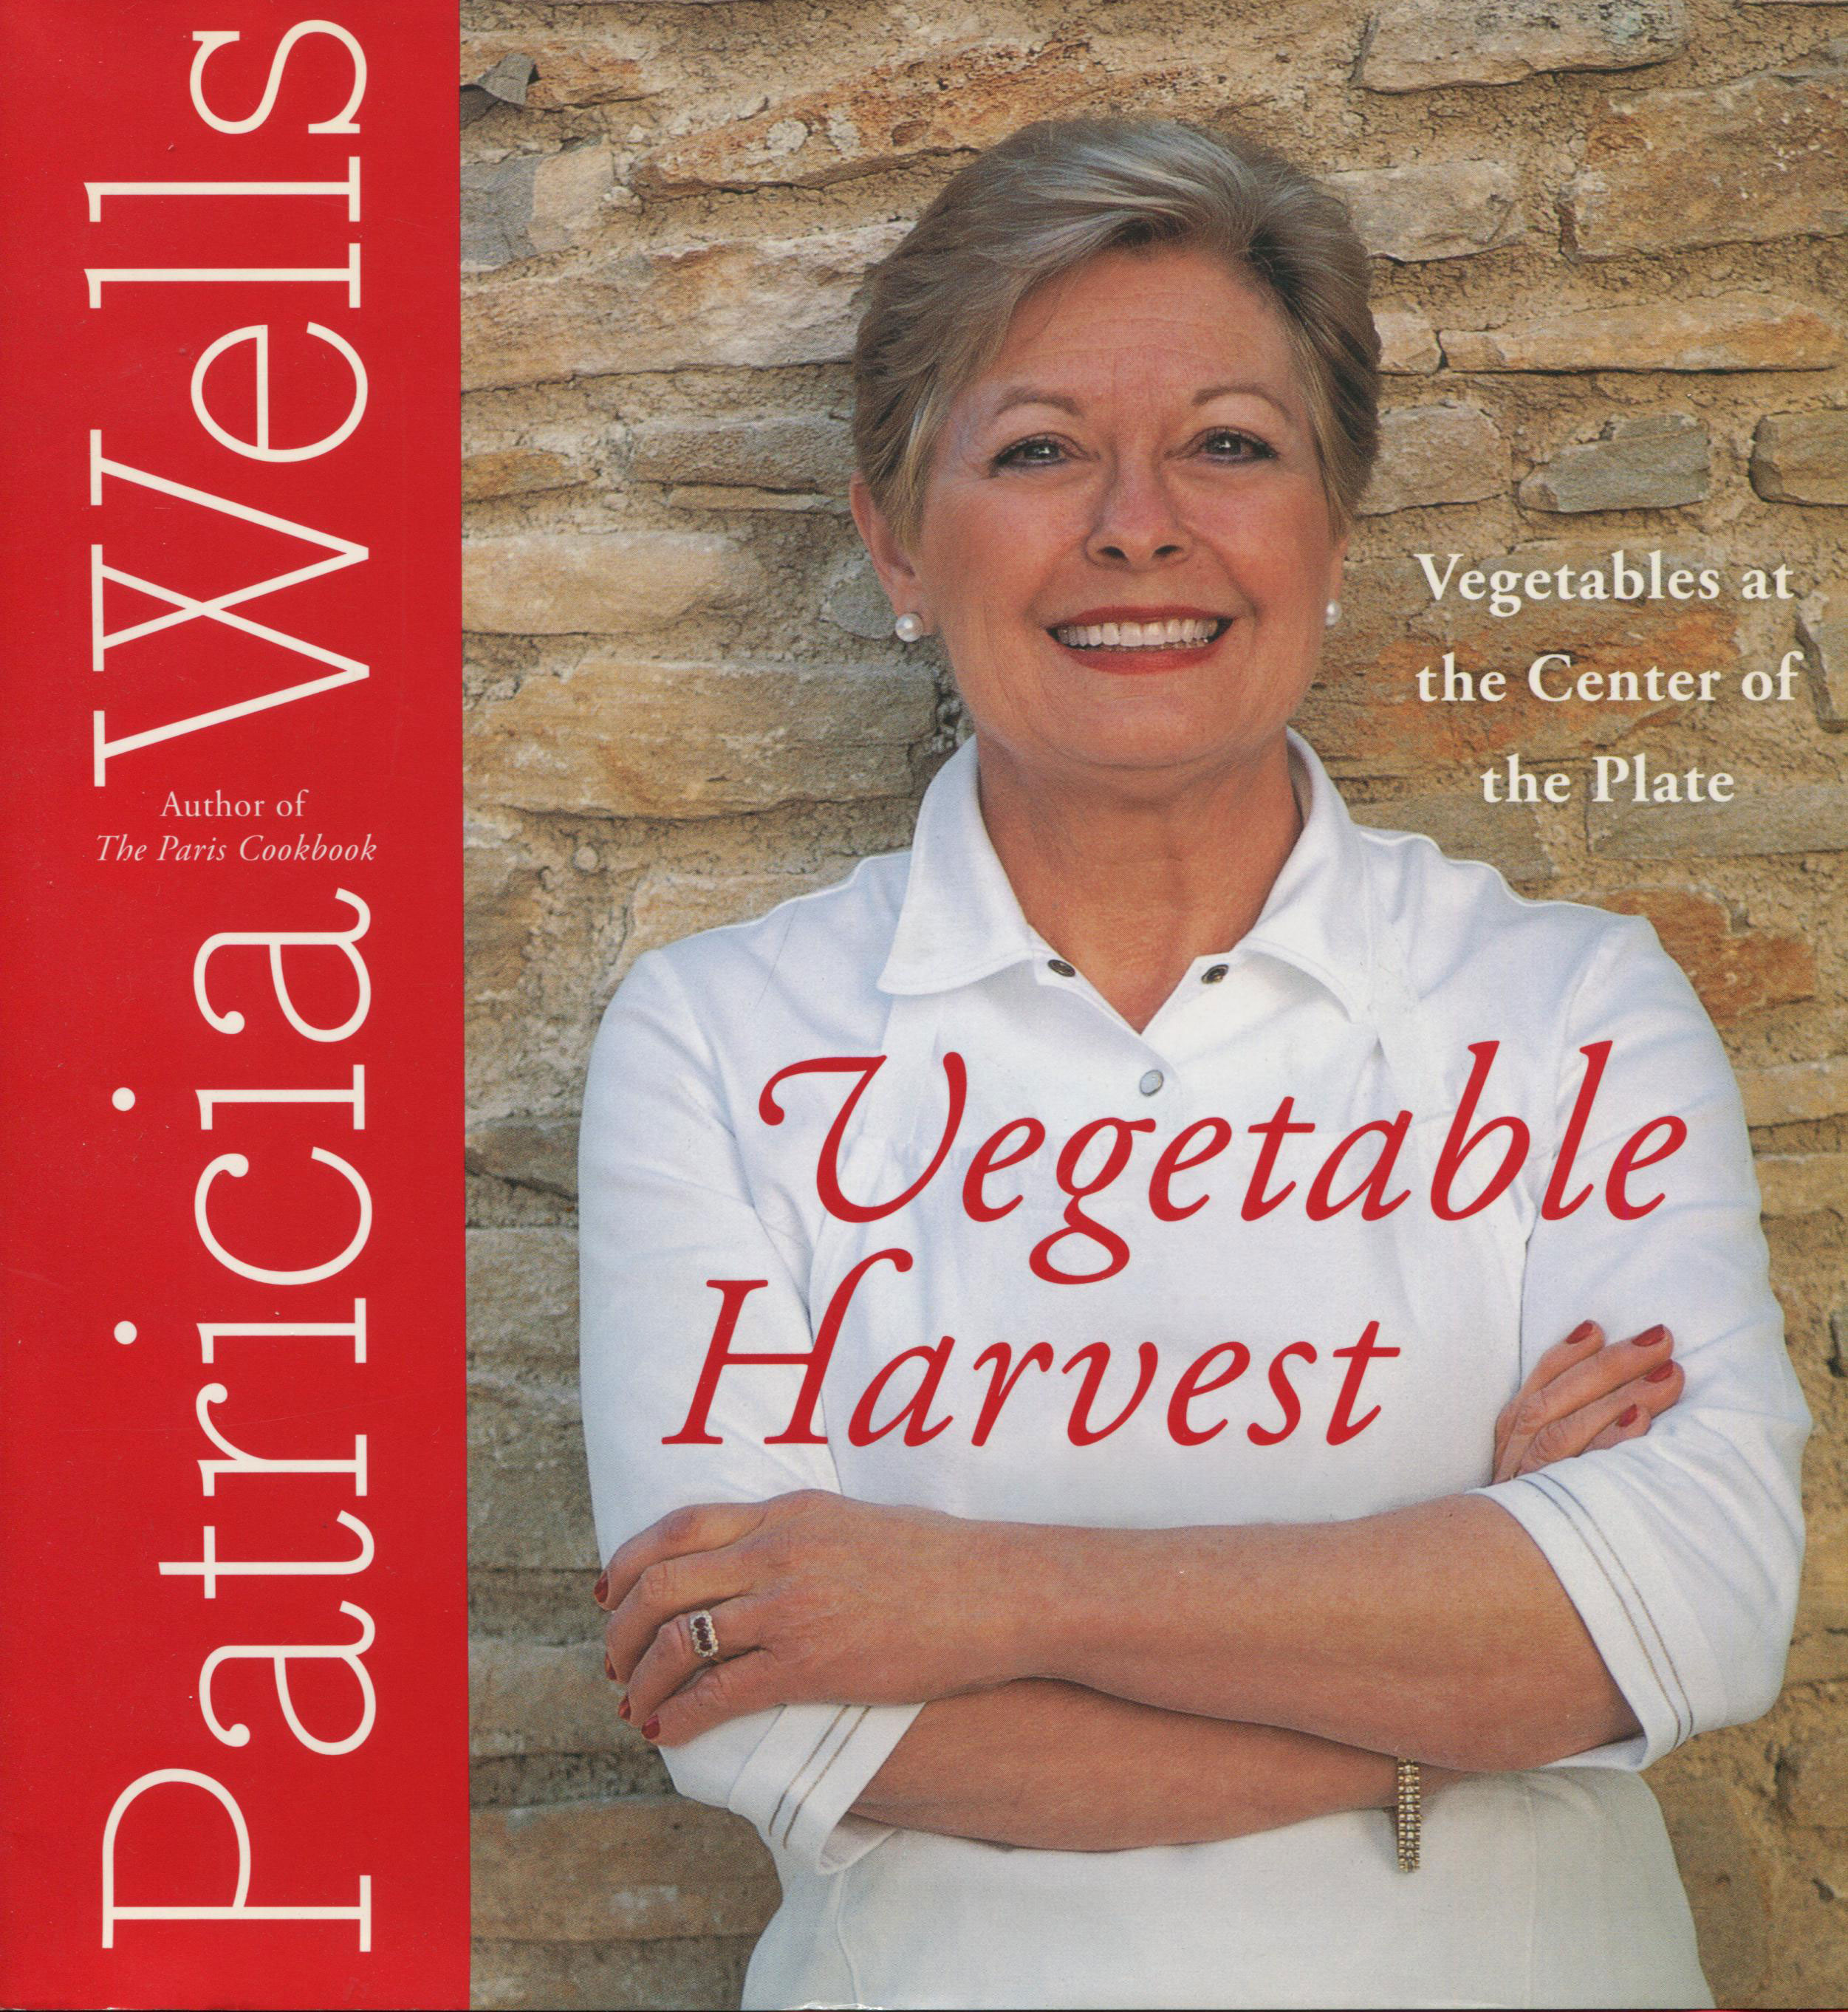 Thanksgiving Side Dishes and Vegetables: Vegetable Harvest by Patricia Wells